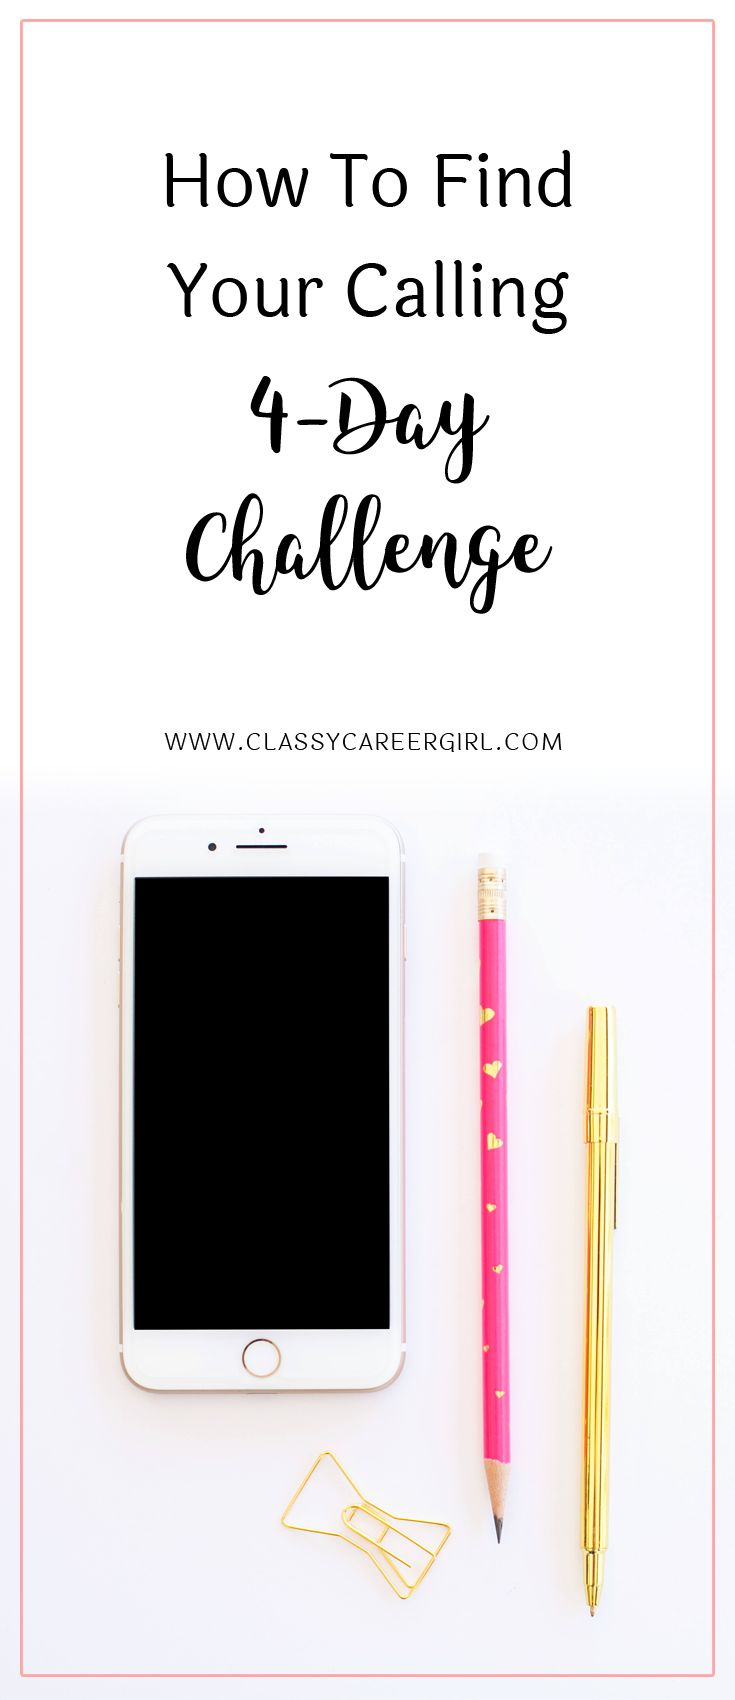 How To Find Your Calling 4-Day Challenge  You'll learn the 3 components that factor into your calling and an important warning. This training is a sneak peek of our Love Your Career Formula membership site.  Read more: http://www.classycareergirl.com/2017/02/find-your-calling-challenge/